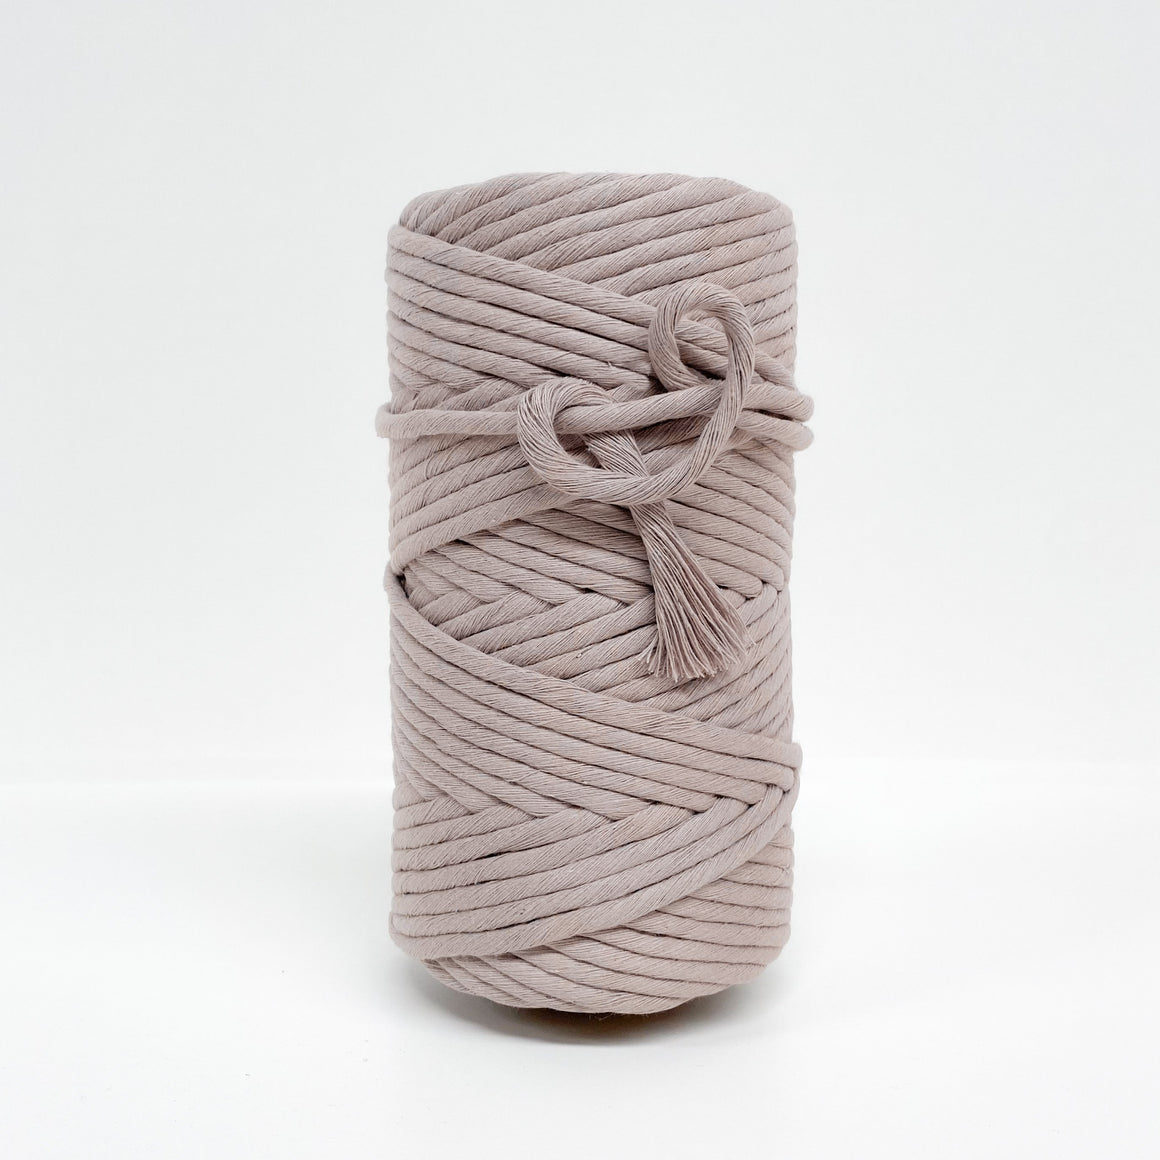 Mary Maker Studio Luxe Colour Cotton 8mm 1KG 8mm Recycled Luxe Macrame String // Quartz macrame cotton macrame rope macrame workshop macrame patterns macrame